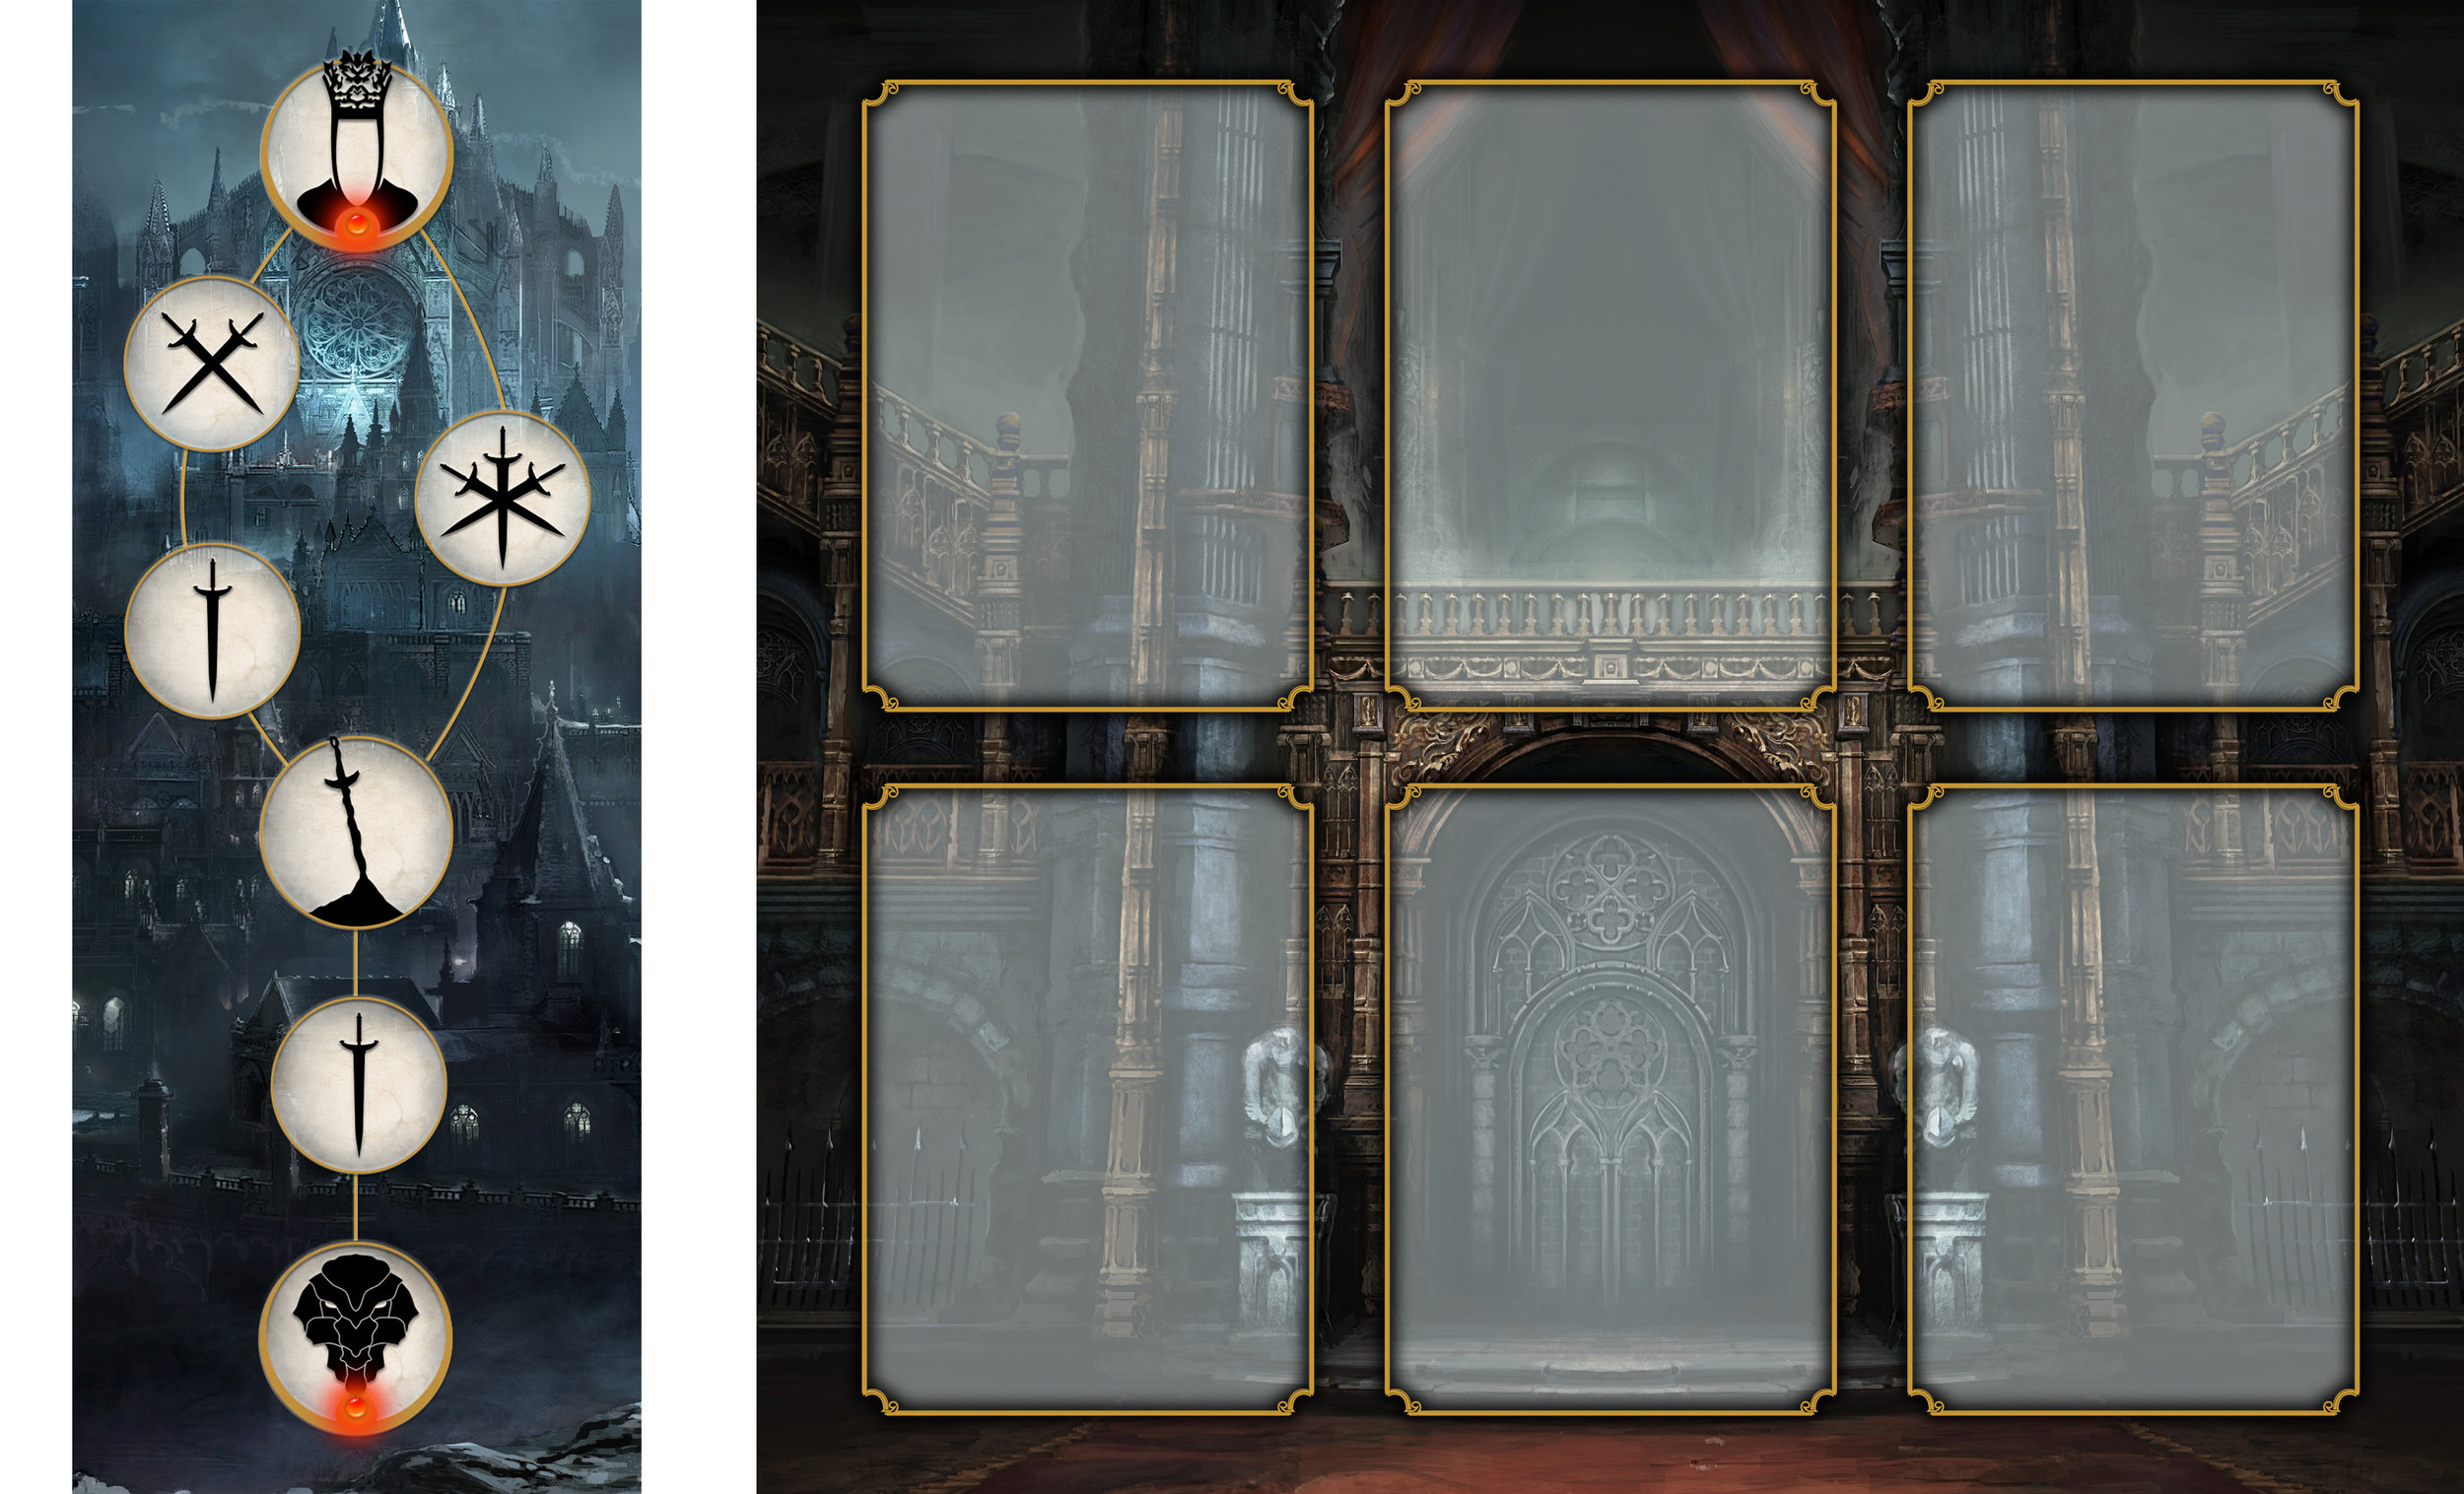 The Player Character Battle Board [Right] will determine the attacks you can make. Whilst the Encounter Map [Left] will determine the difficulty of your battle.